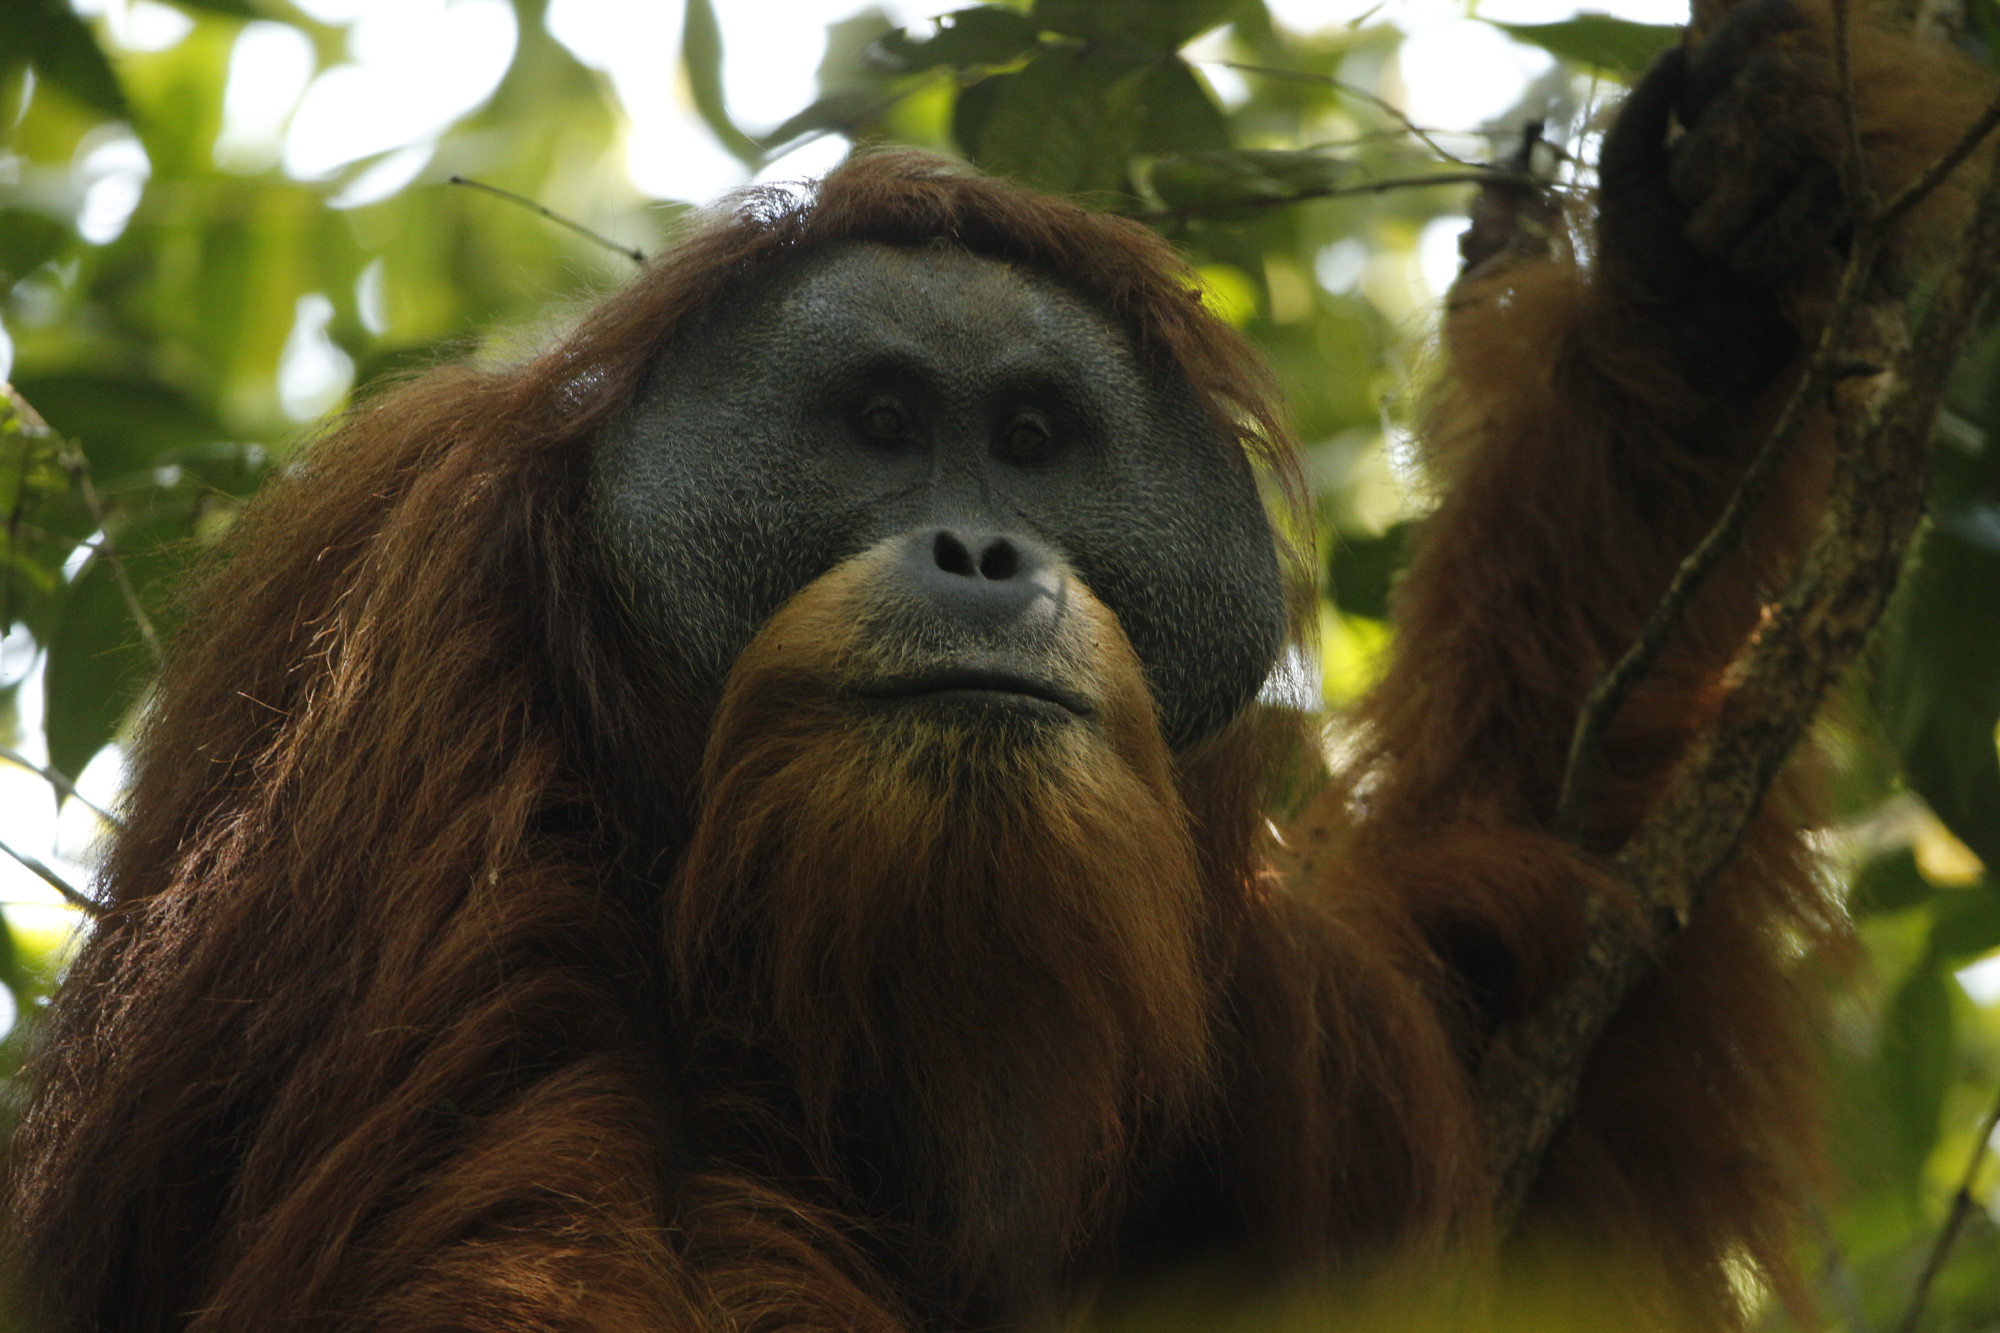 New great ape species discovered in Indonesia | UoP News